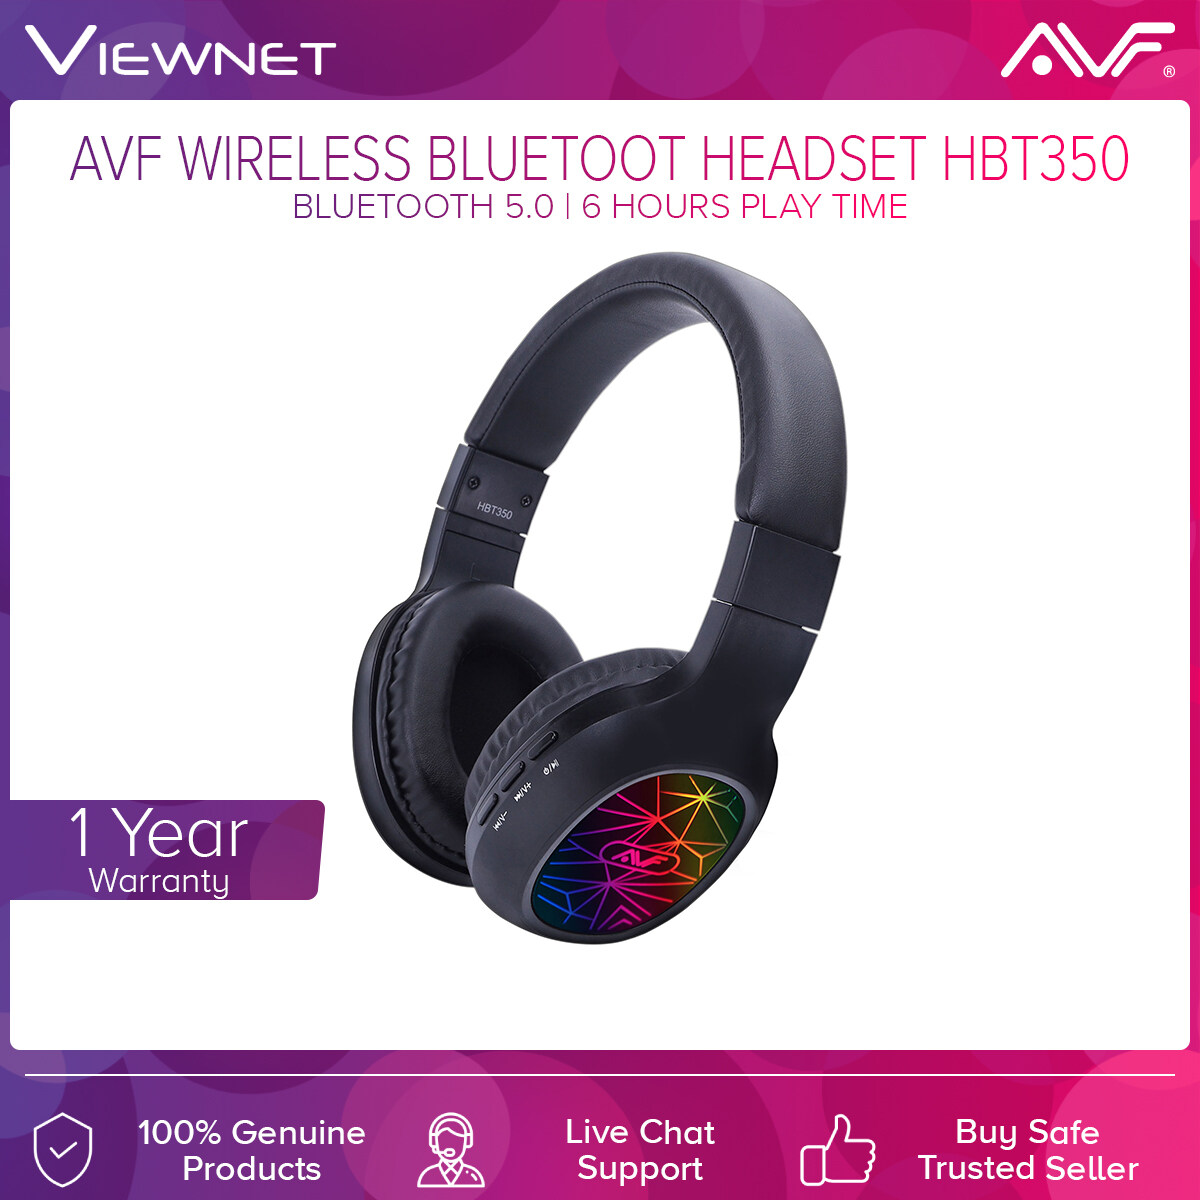 AVF Wireless Bluetooth Headset HBT350 with Bluetooth, 6 Hours Play Time